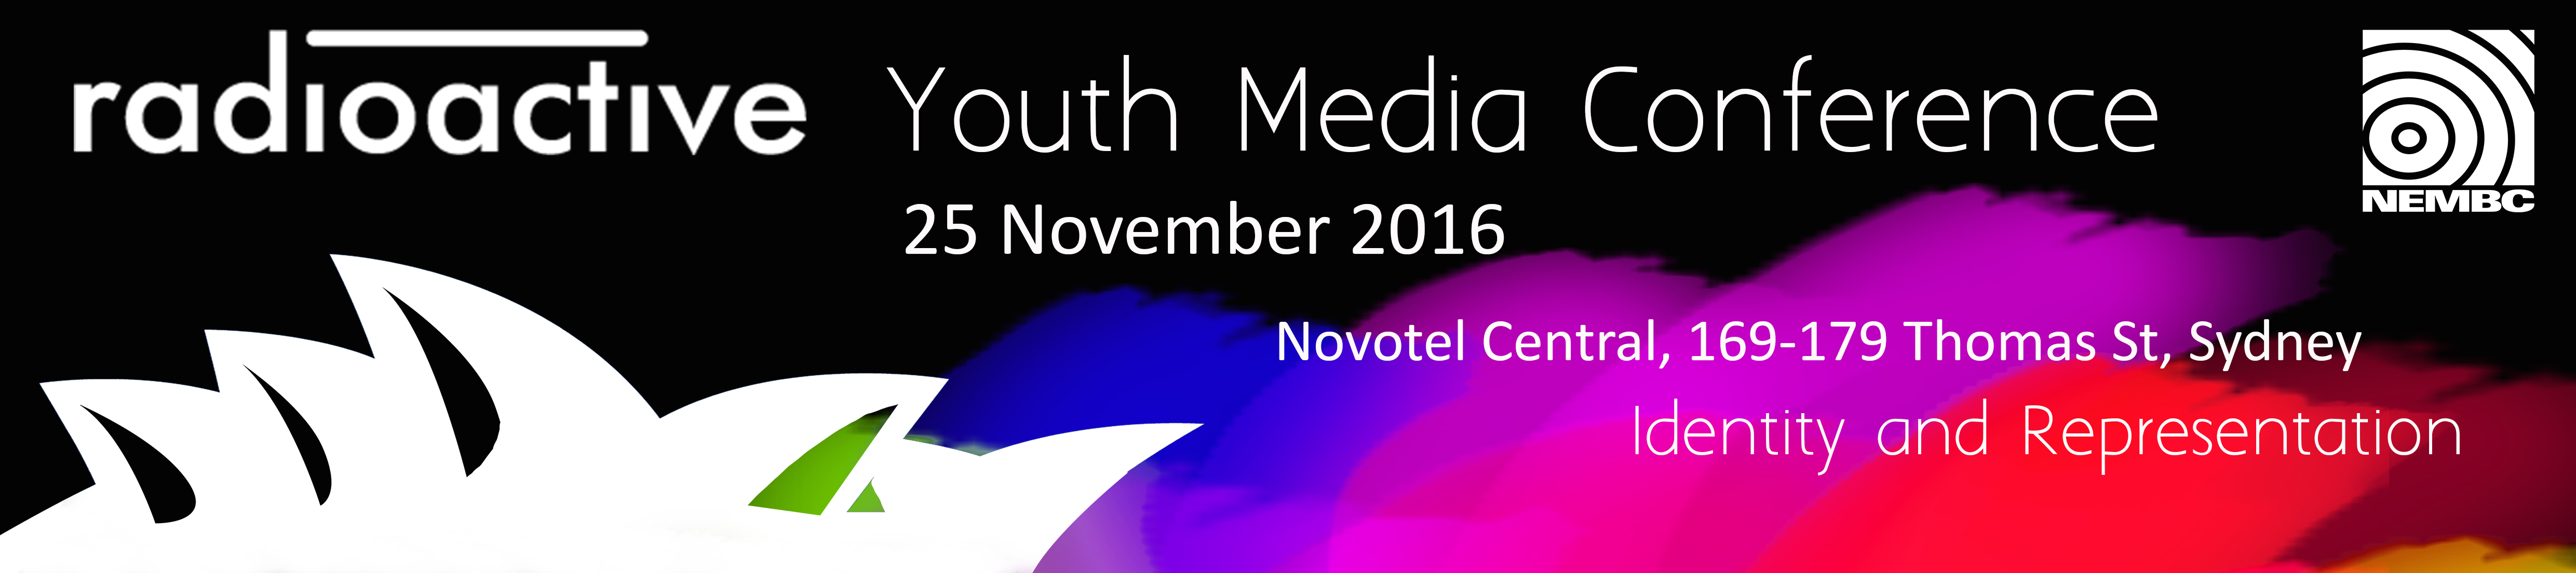 email-signature-youth-poster-conference-2016-sydney-final-final